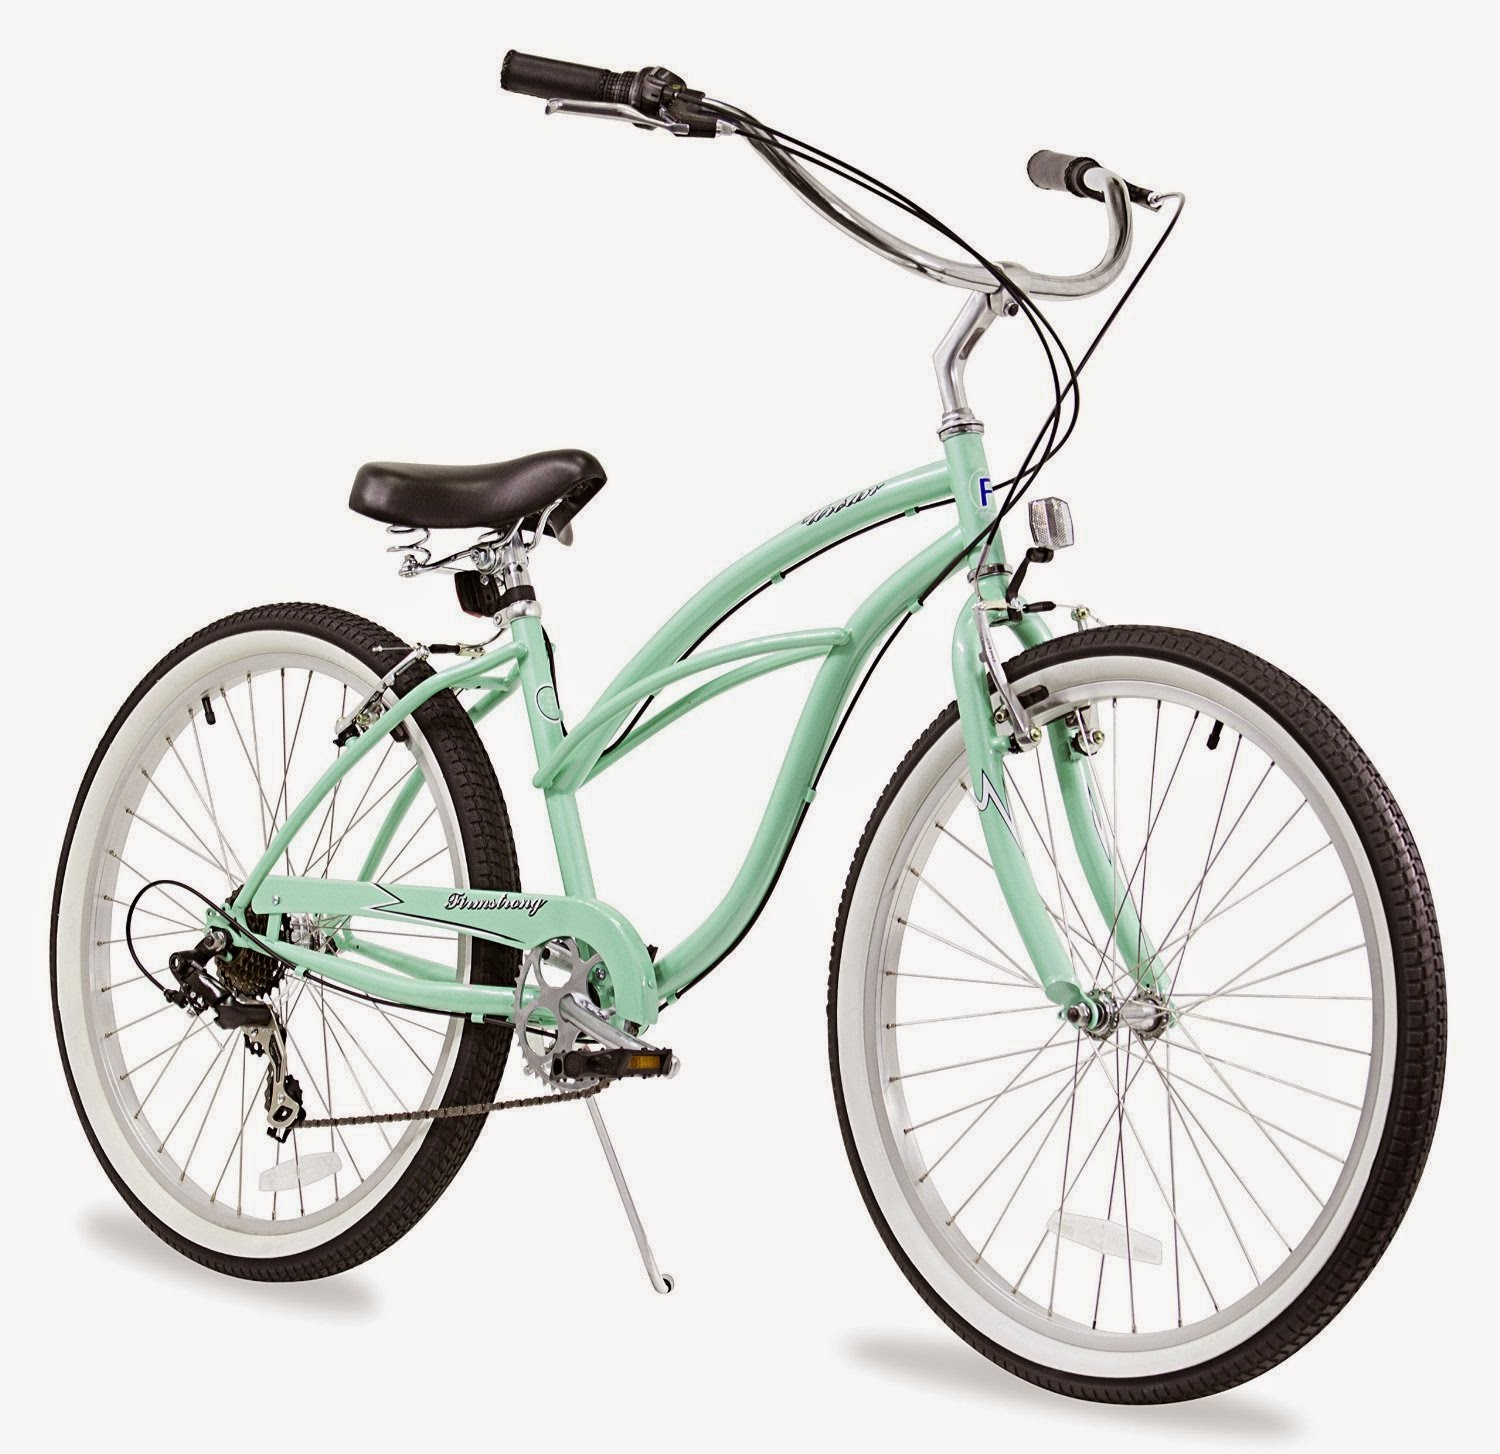 Firmstrong Urban Lady Beach Cruiser bike, 7-speed, mint green color, plus choice of other colors, review, easy to use & comfortable bike with swept-back handlebars for upright riding position, front and rear brakes